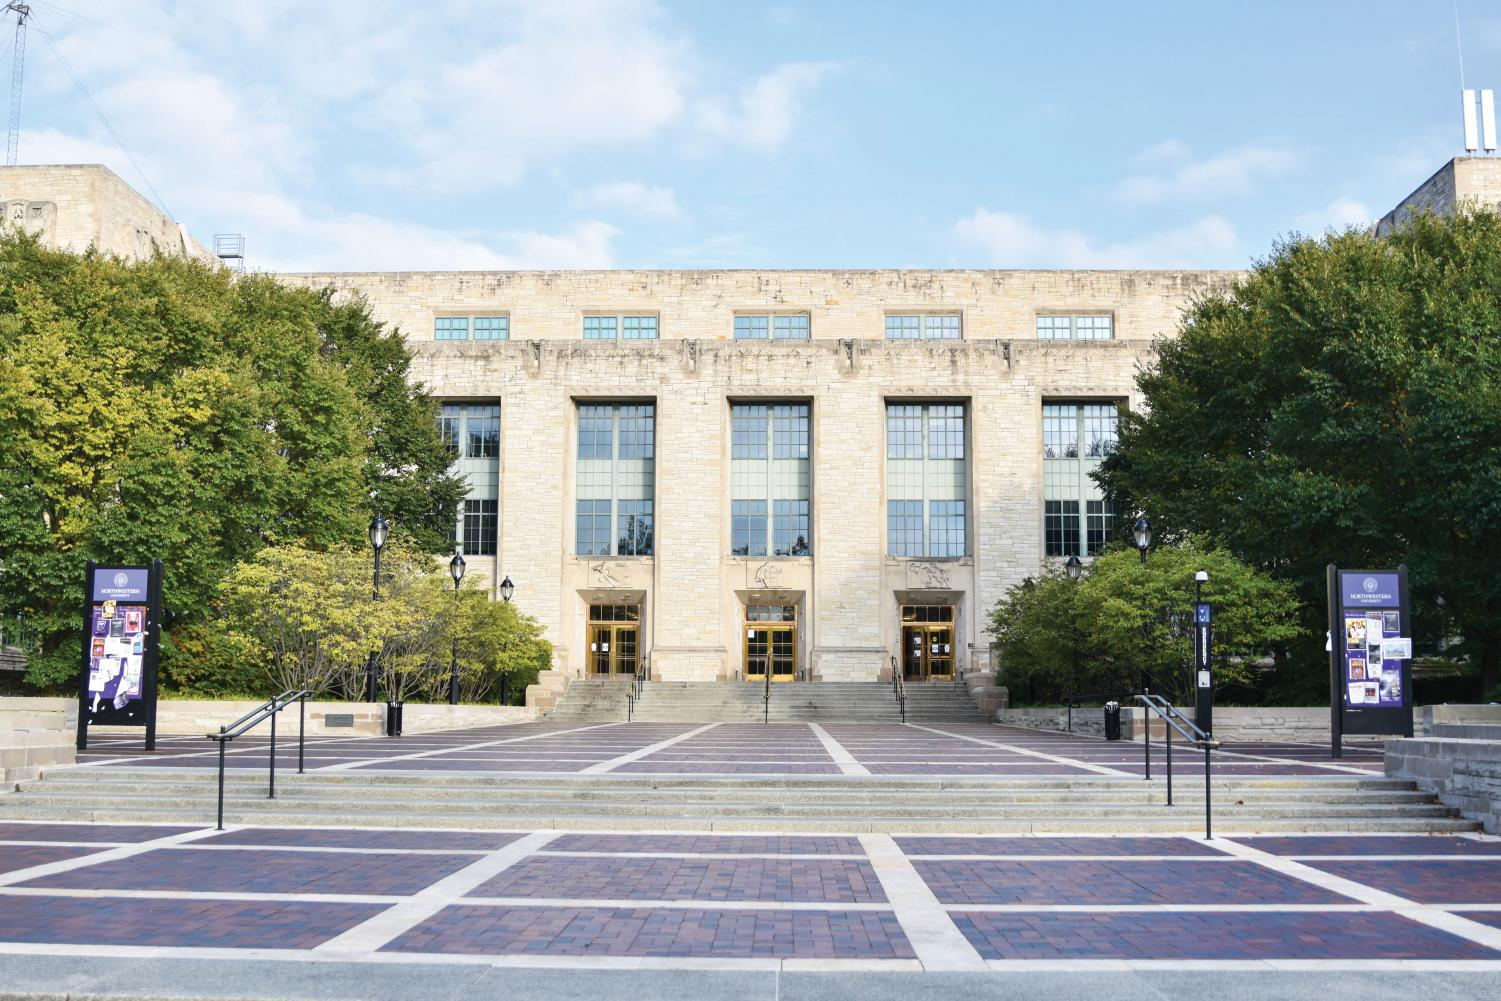 The government shutdown has not impacted Northwestern's federal research funding but could if significantly prolonged, said Jay Walsh, vice president for research.